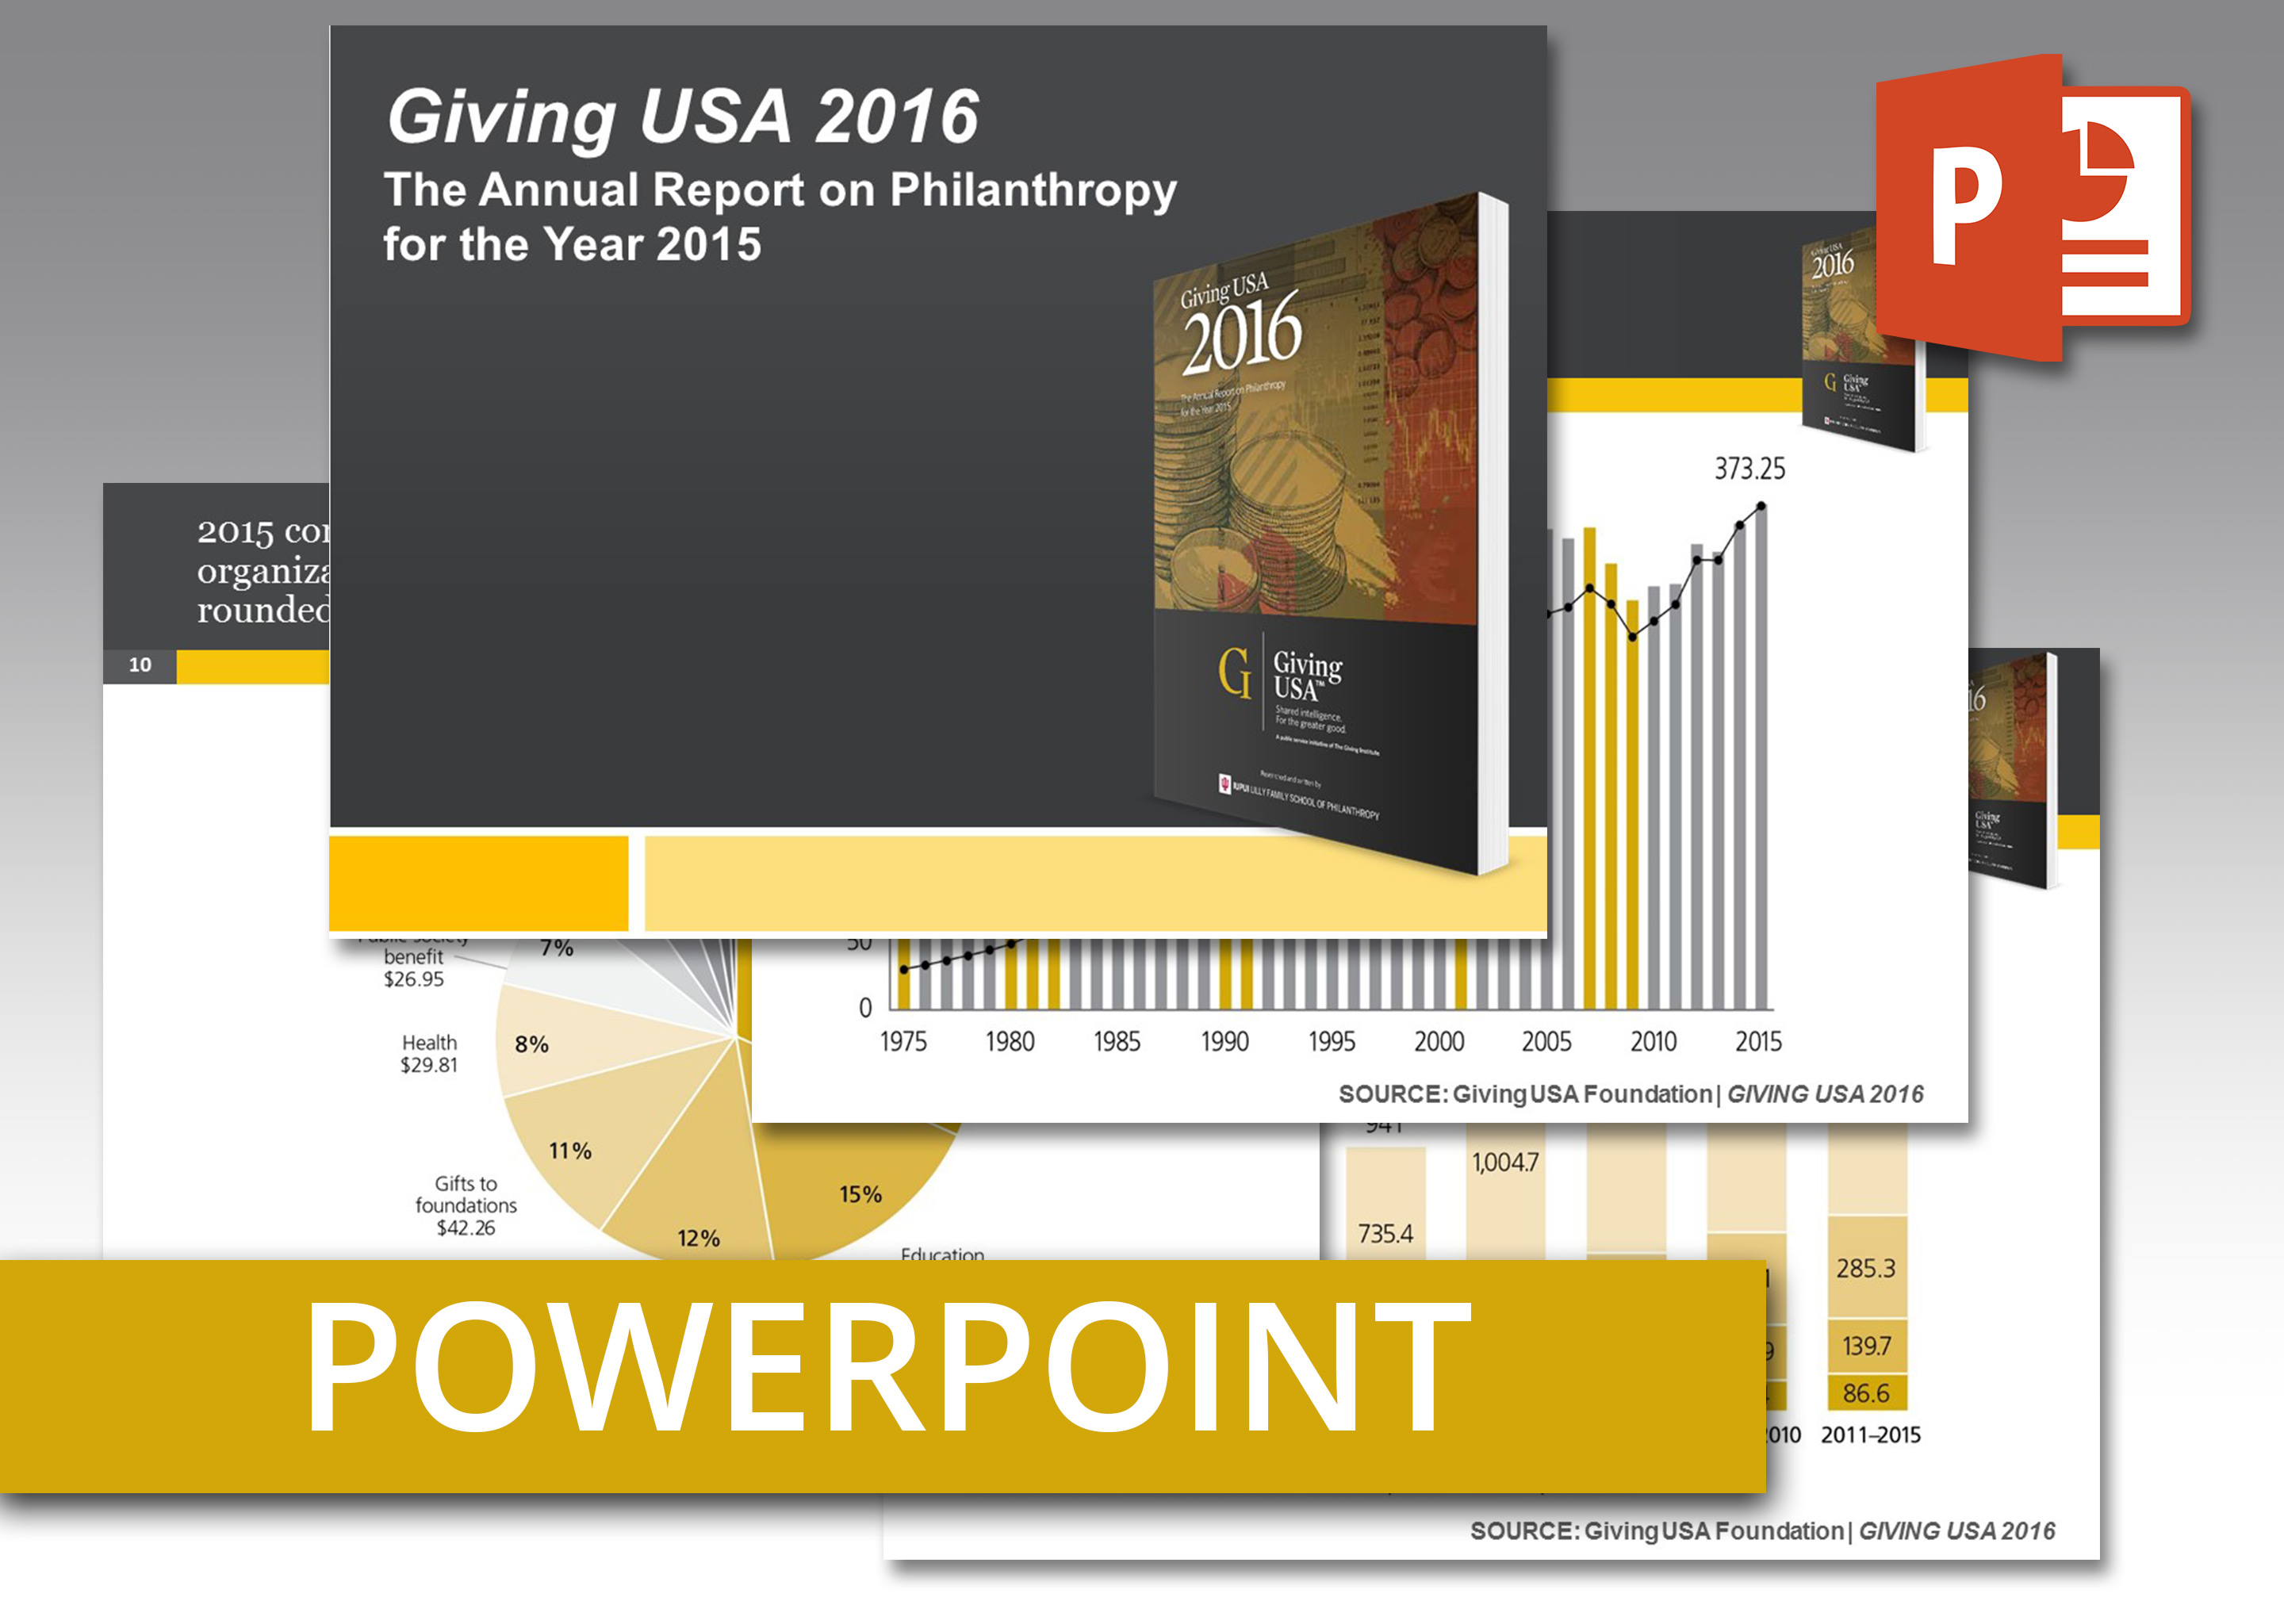 Usdgus  Pleasing Giving Usa  Powerpoint An Easytouse Presentation Of Report  With Hot Giving Usa  Powerpoint An Easytouse Presentation Of Report Findings Including Talking Points With Delightful Powerpoint  Templates Free Download Also Send Powerpoint To Word In Addition Powerpoint Made Easy And Swot Analysis Template Powerpoint Free As Well As Powerpoint Motion Backgrounds Additionally The Brain Powerpoint From Givingusaorg With Usdgus  Hot Giving Usa  Powerpoint An Easytouse Presentation Of Report  With Delightful Giving Usa  Powerpoint An Easytouse Presentation Of Report Findings Including Talking Points And Pleasing Powerpoint  Templates Free Download Also Send Powerpoint To Word In Addition Powerpoint Made Easy From Givingusaorg